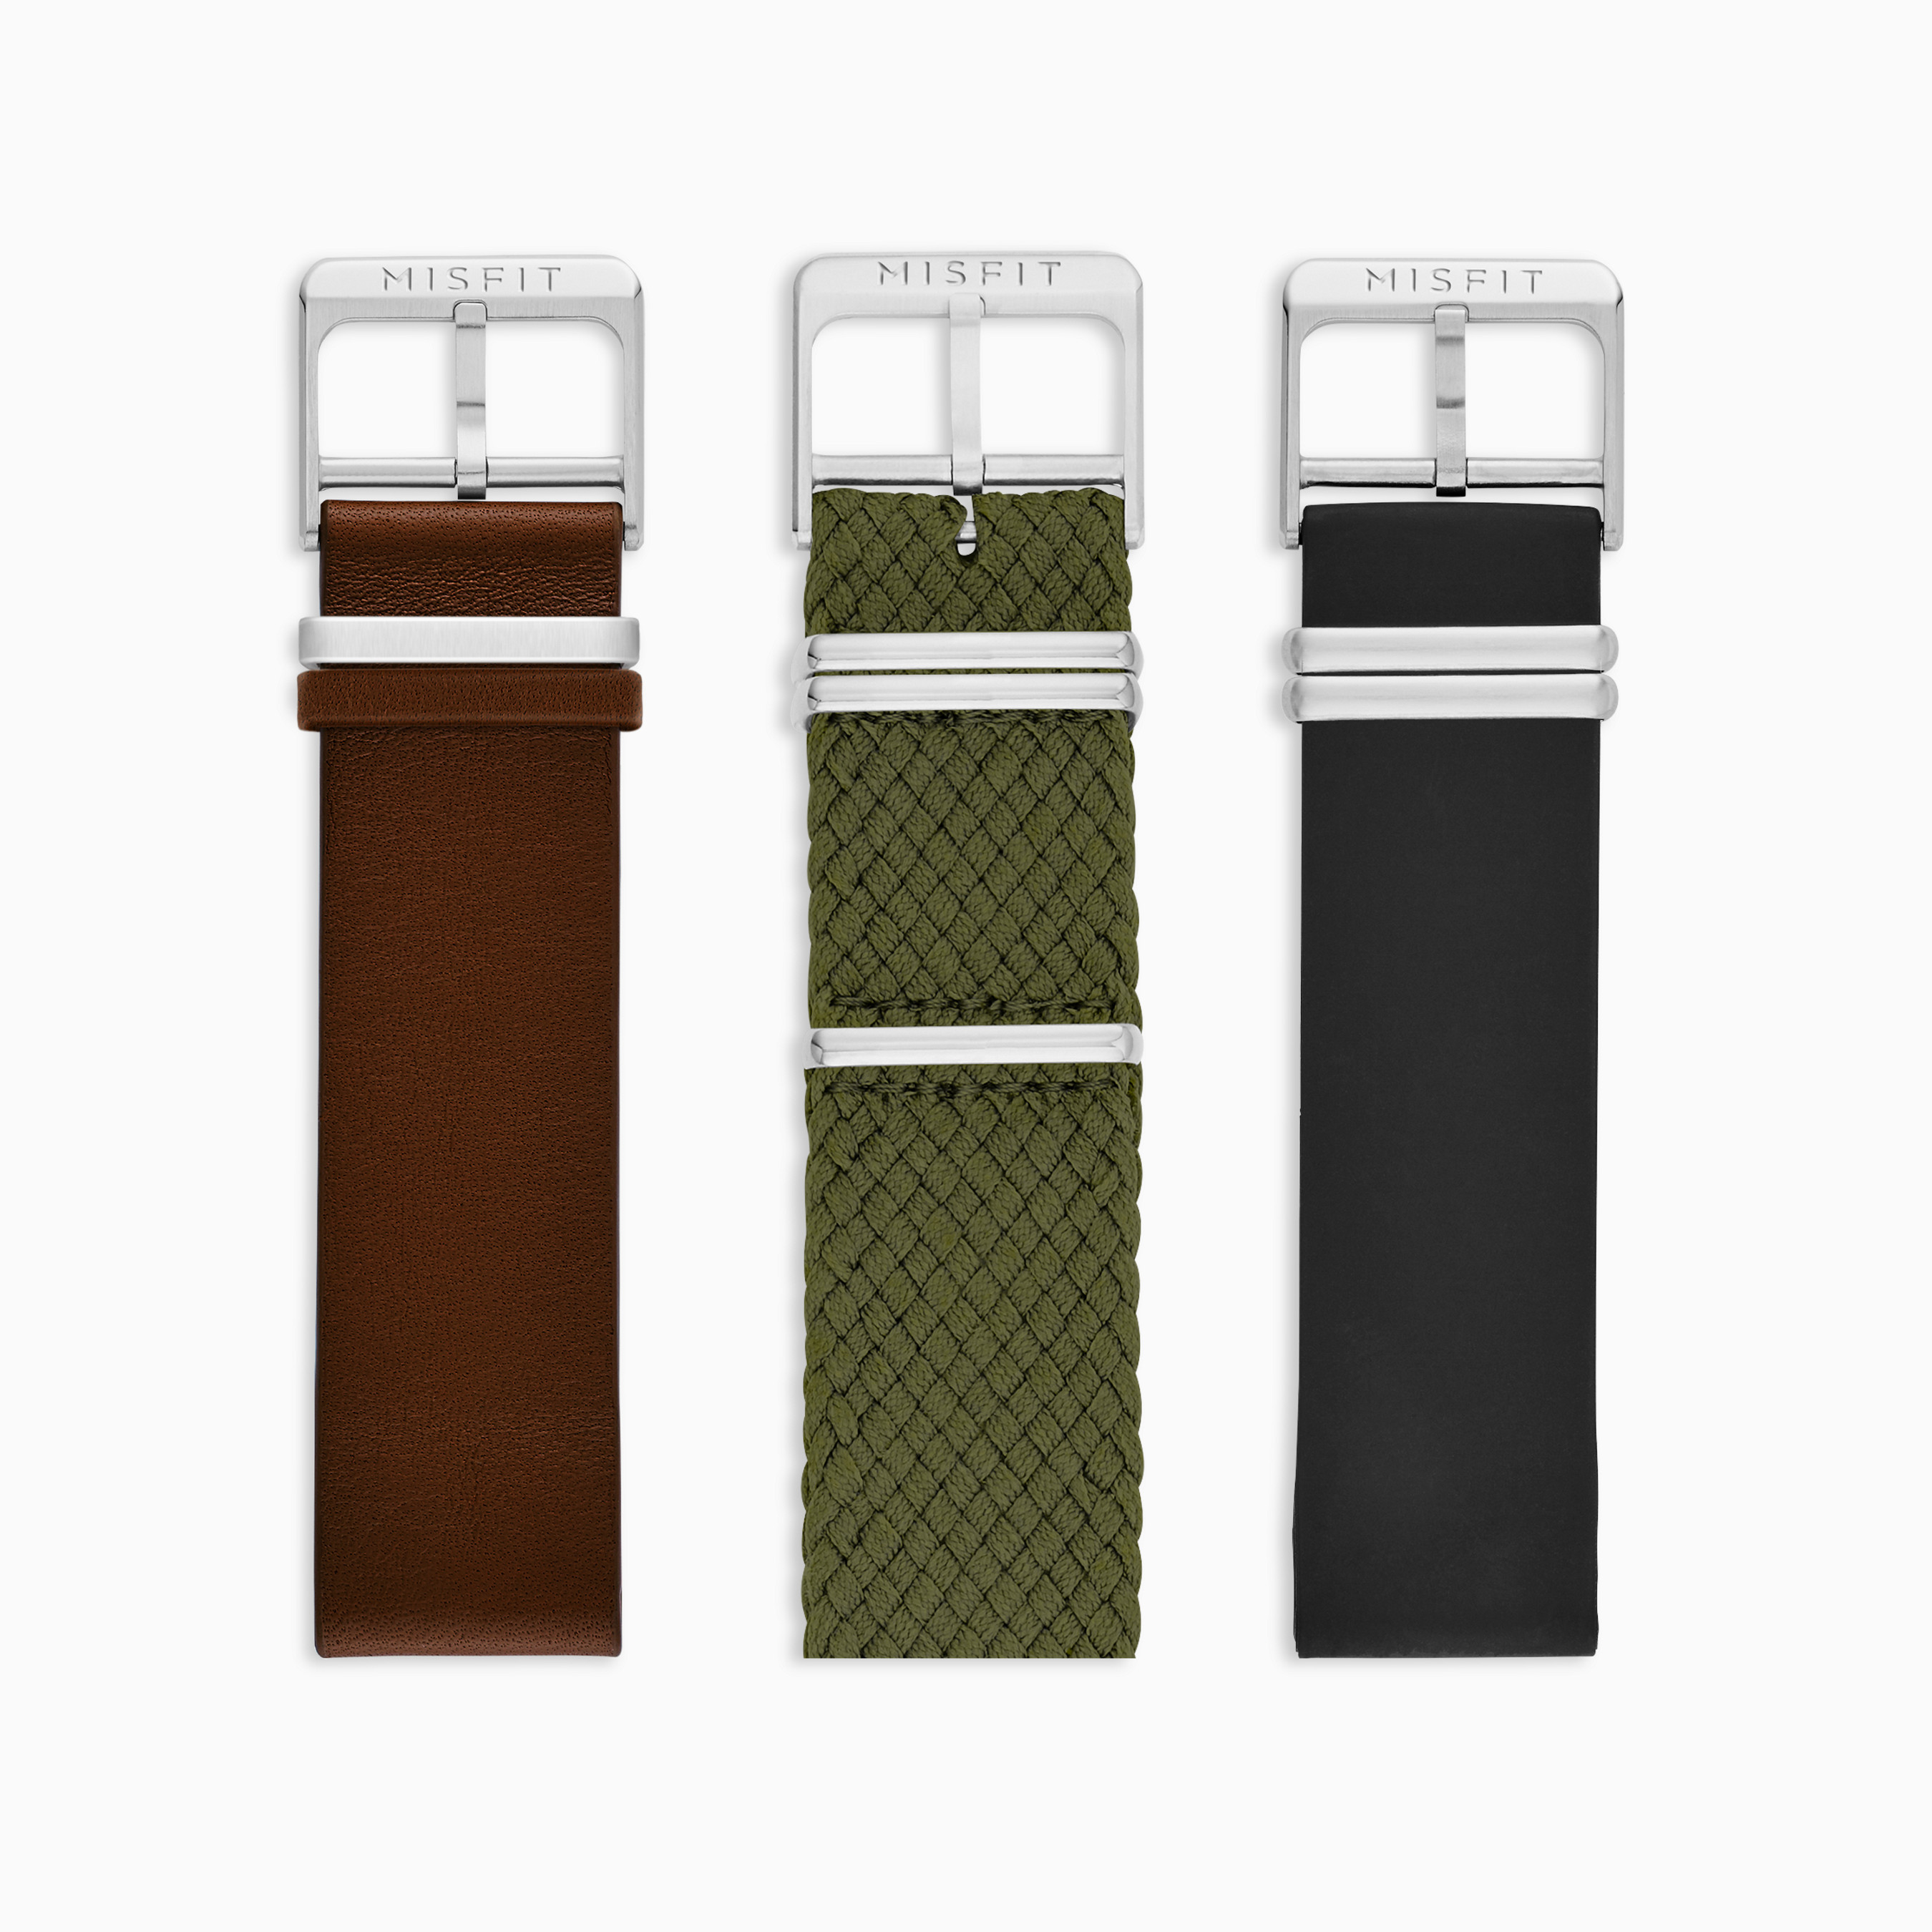 20mm Misfit Smartwatch Armbänder 3er Pack